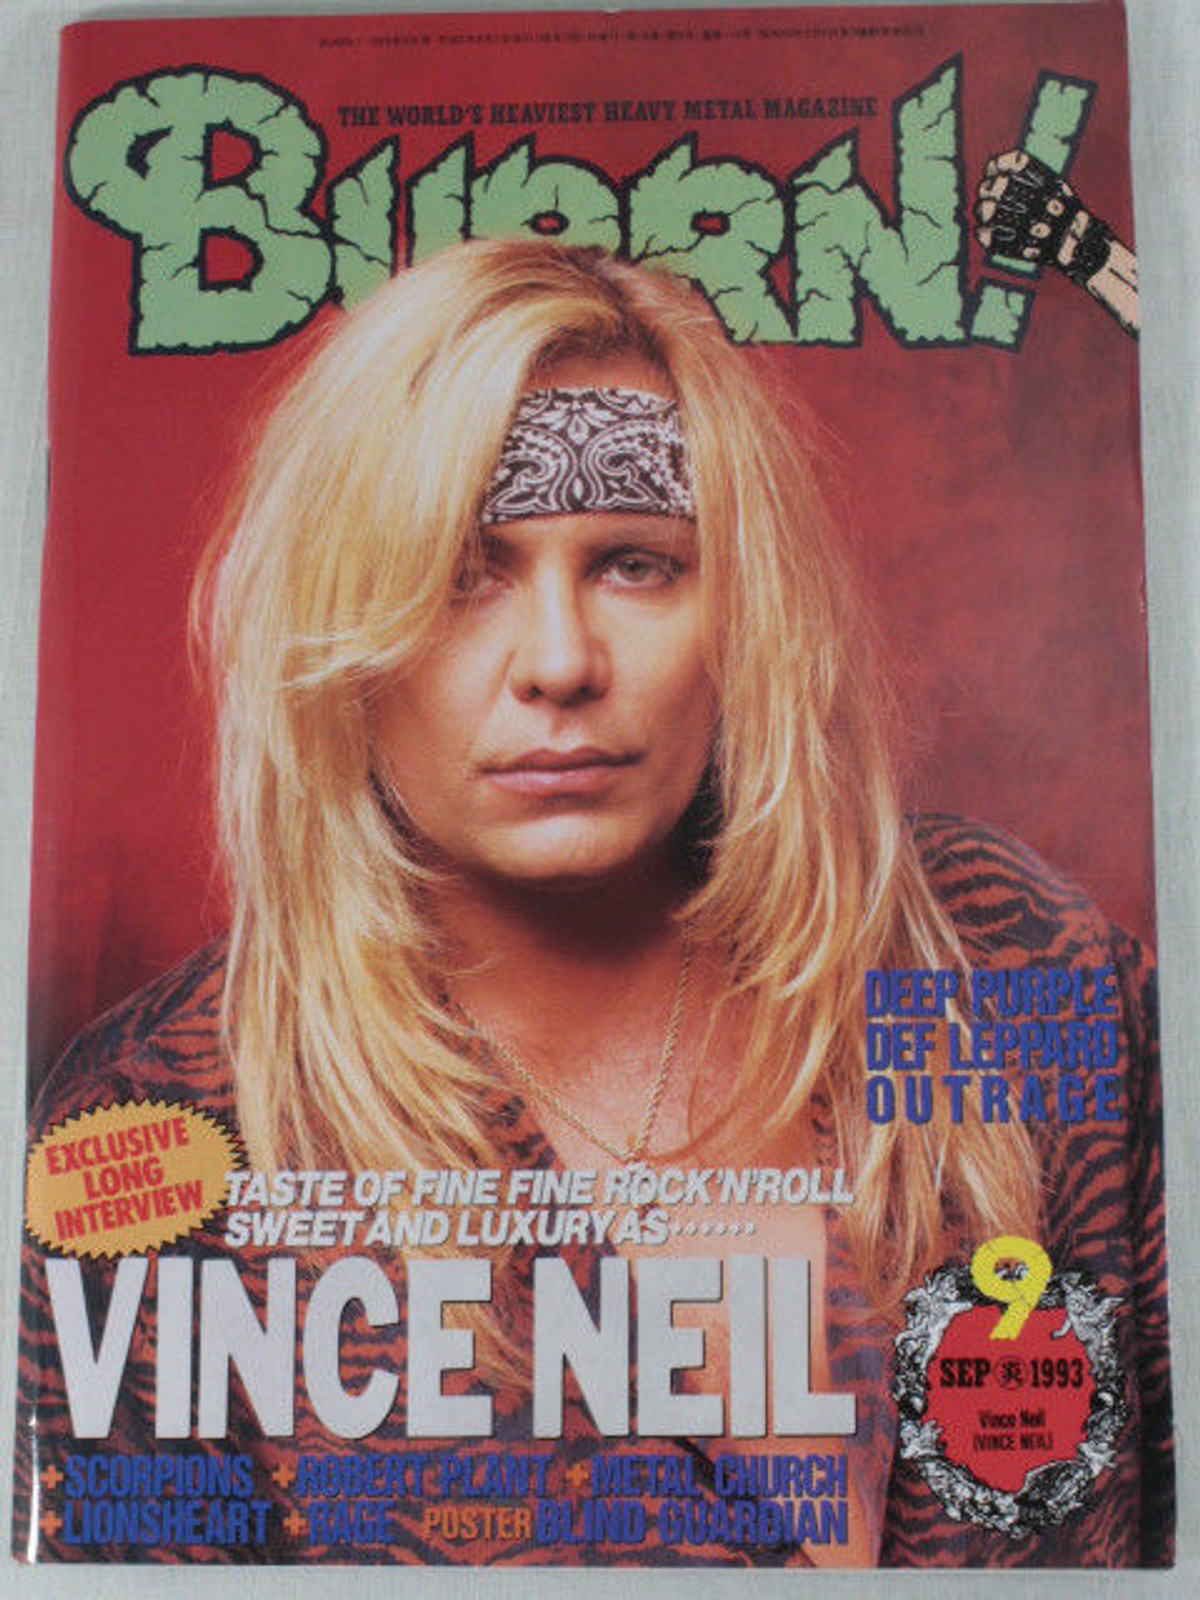 1993/09 BURRN! Japan Rock Magazine VINCE NEIL/SCORPIONS/METAL CHURCH/LIONSHEART